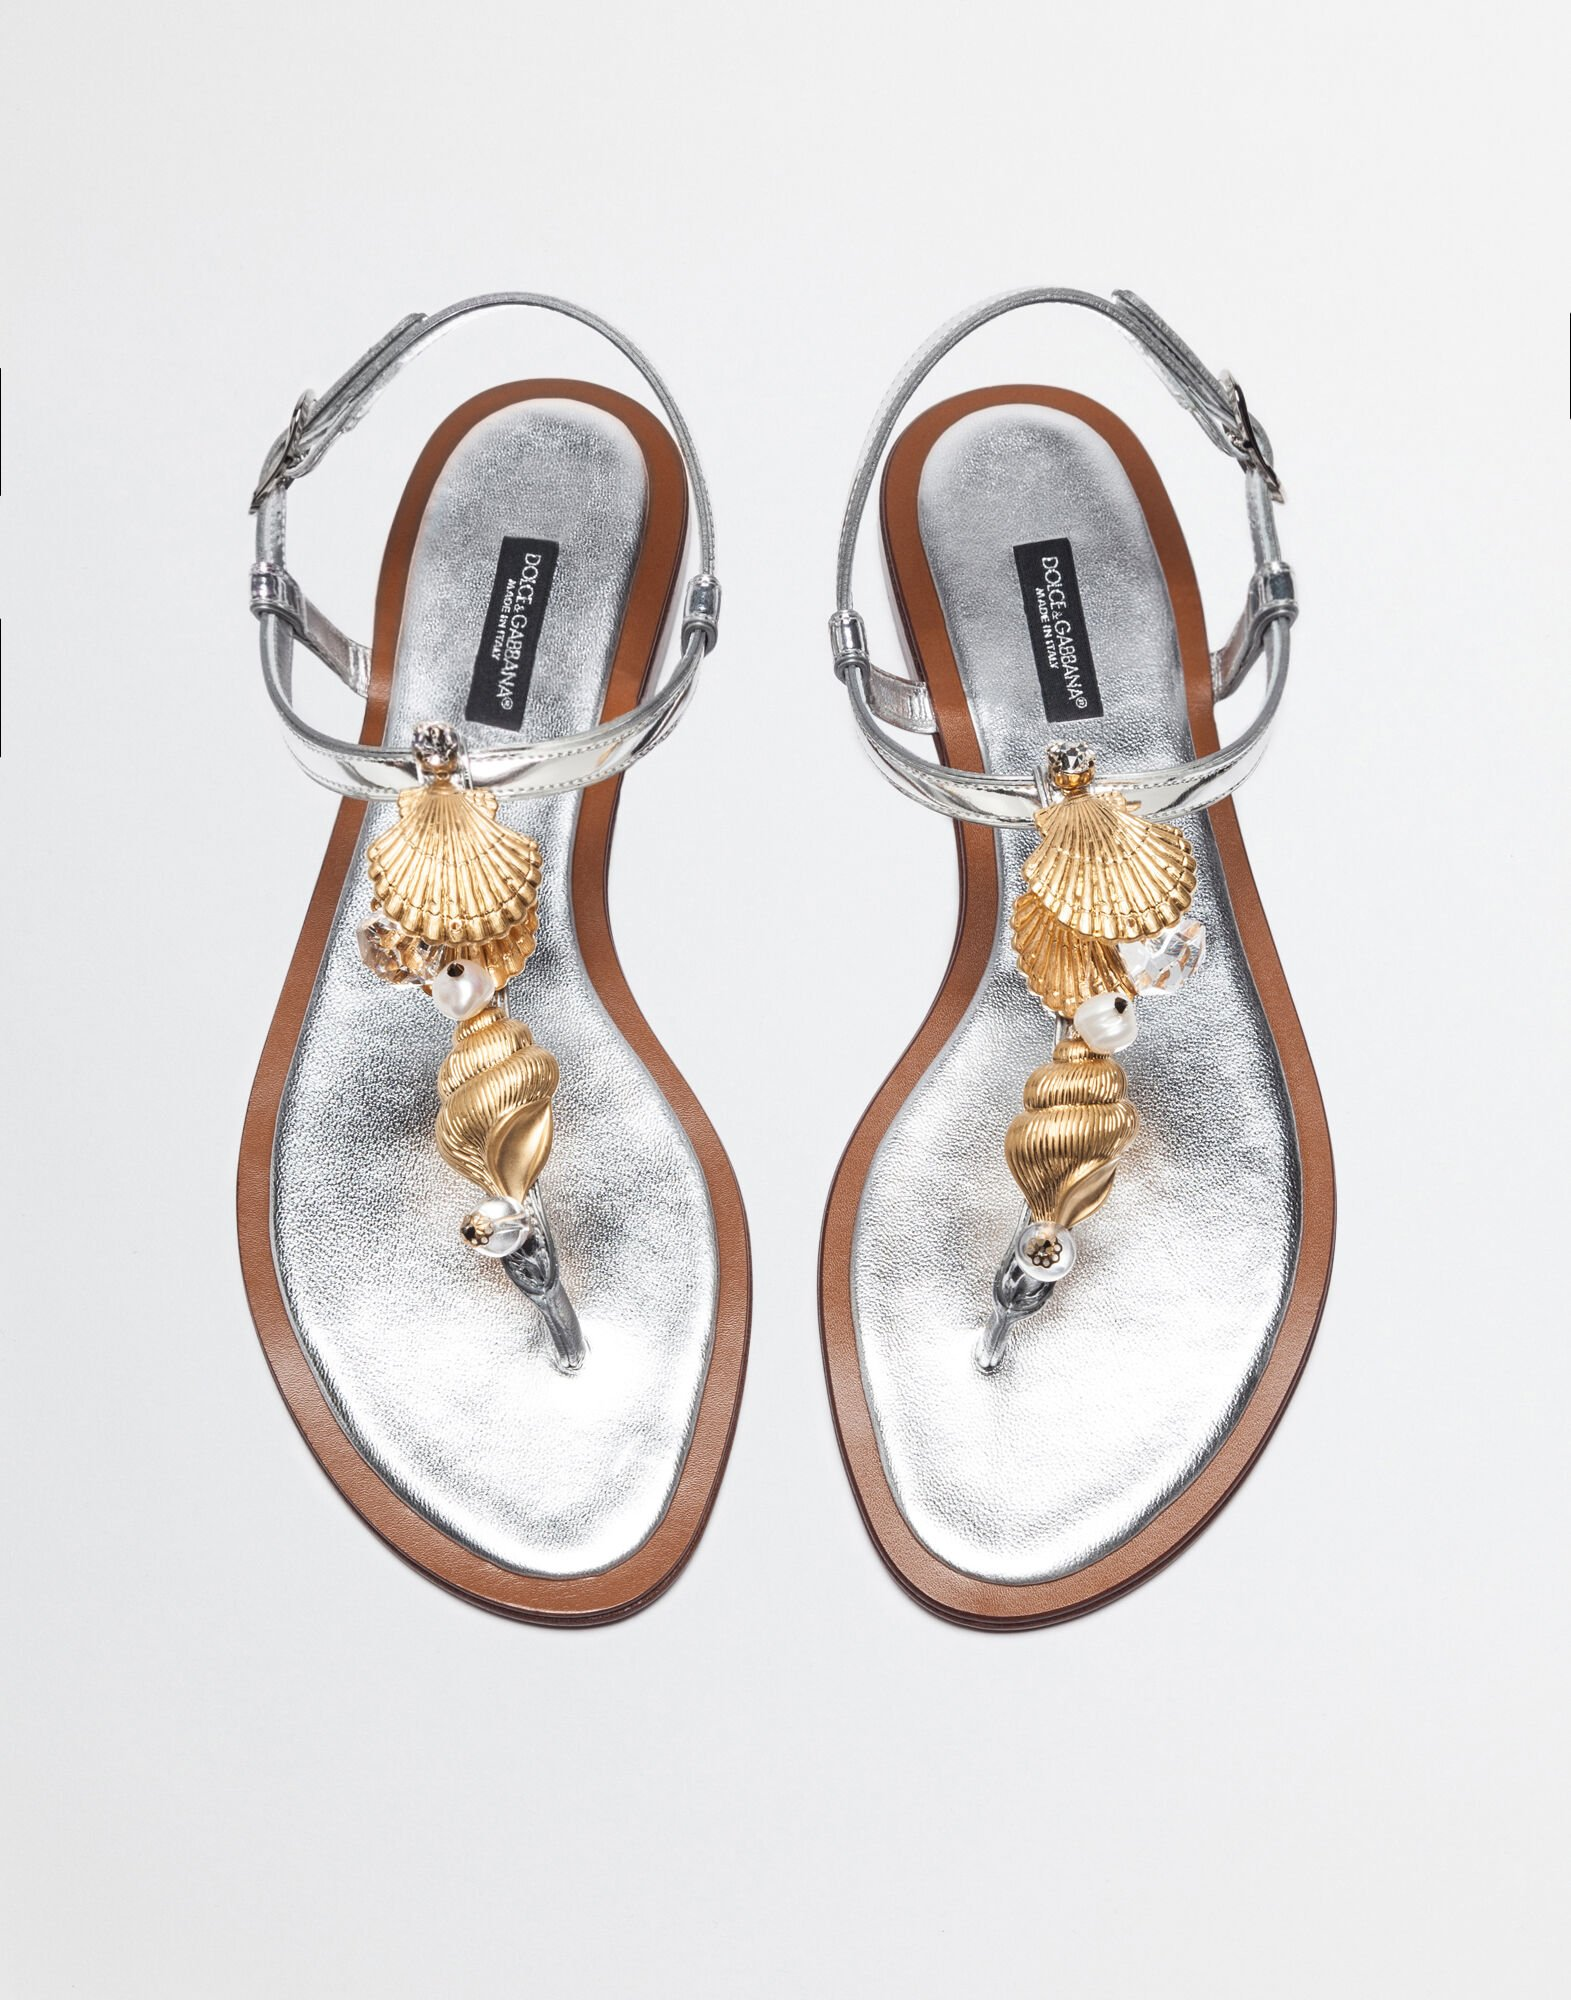 THONG SANDALS IN LAMINATED LEATHER WITH APPLICATIONS